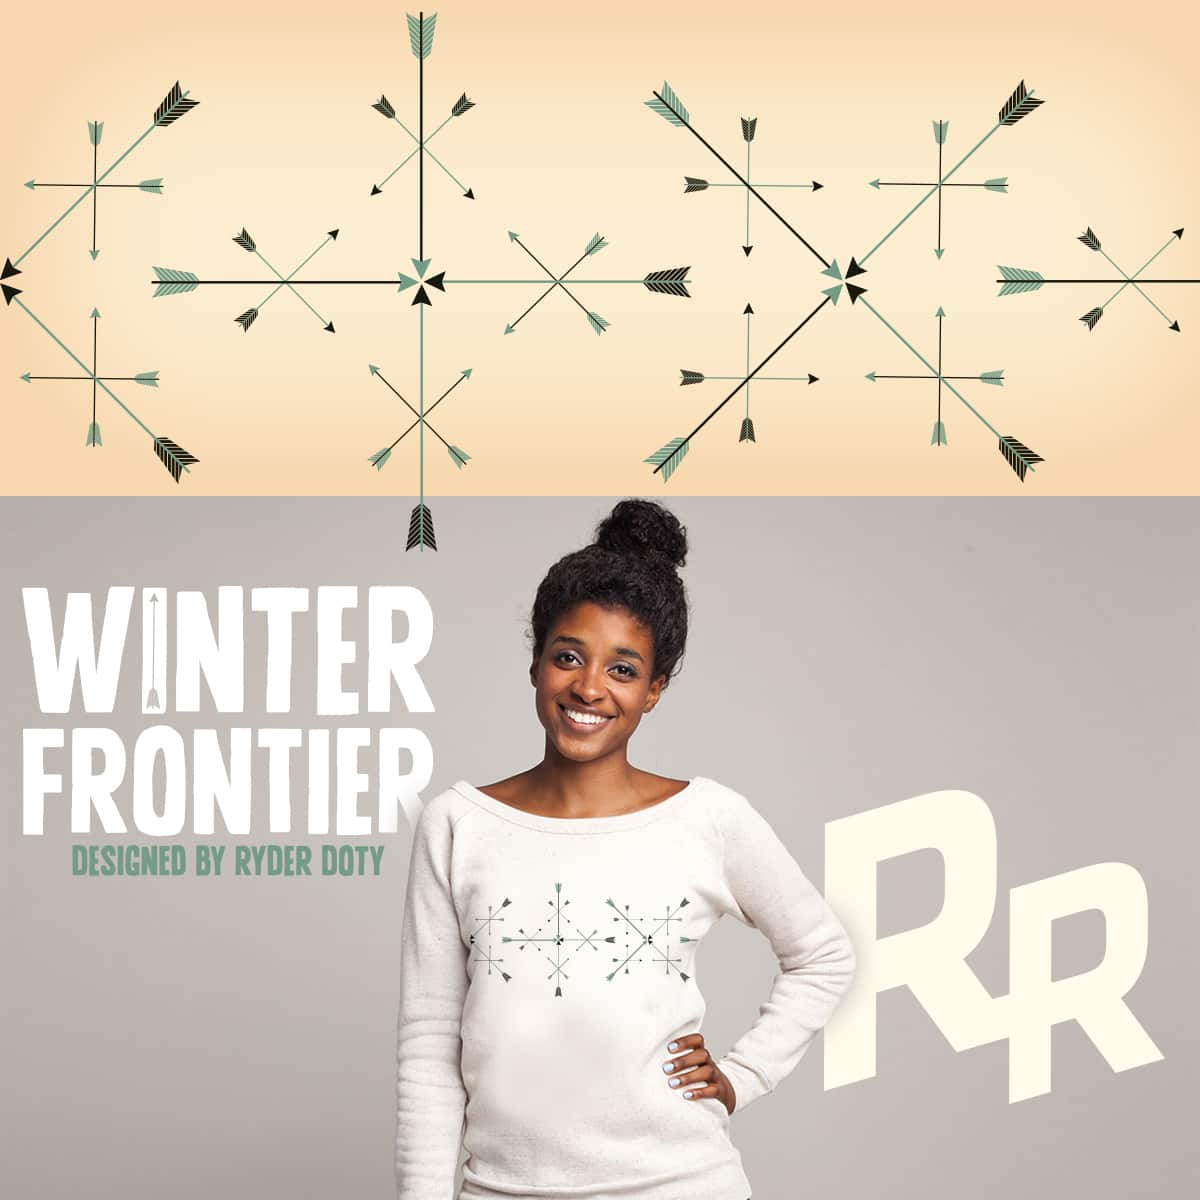 Winter Frontier by Ryder on Threadless